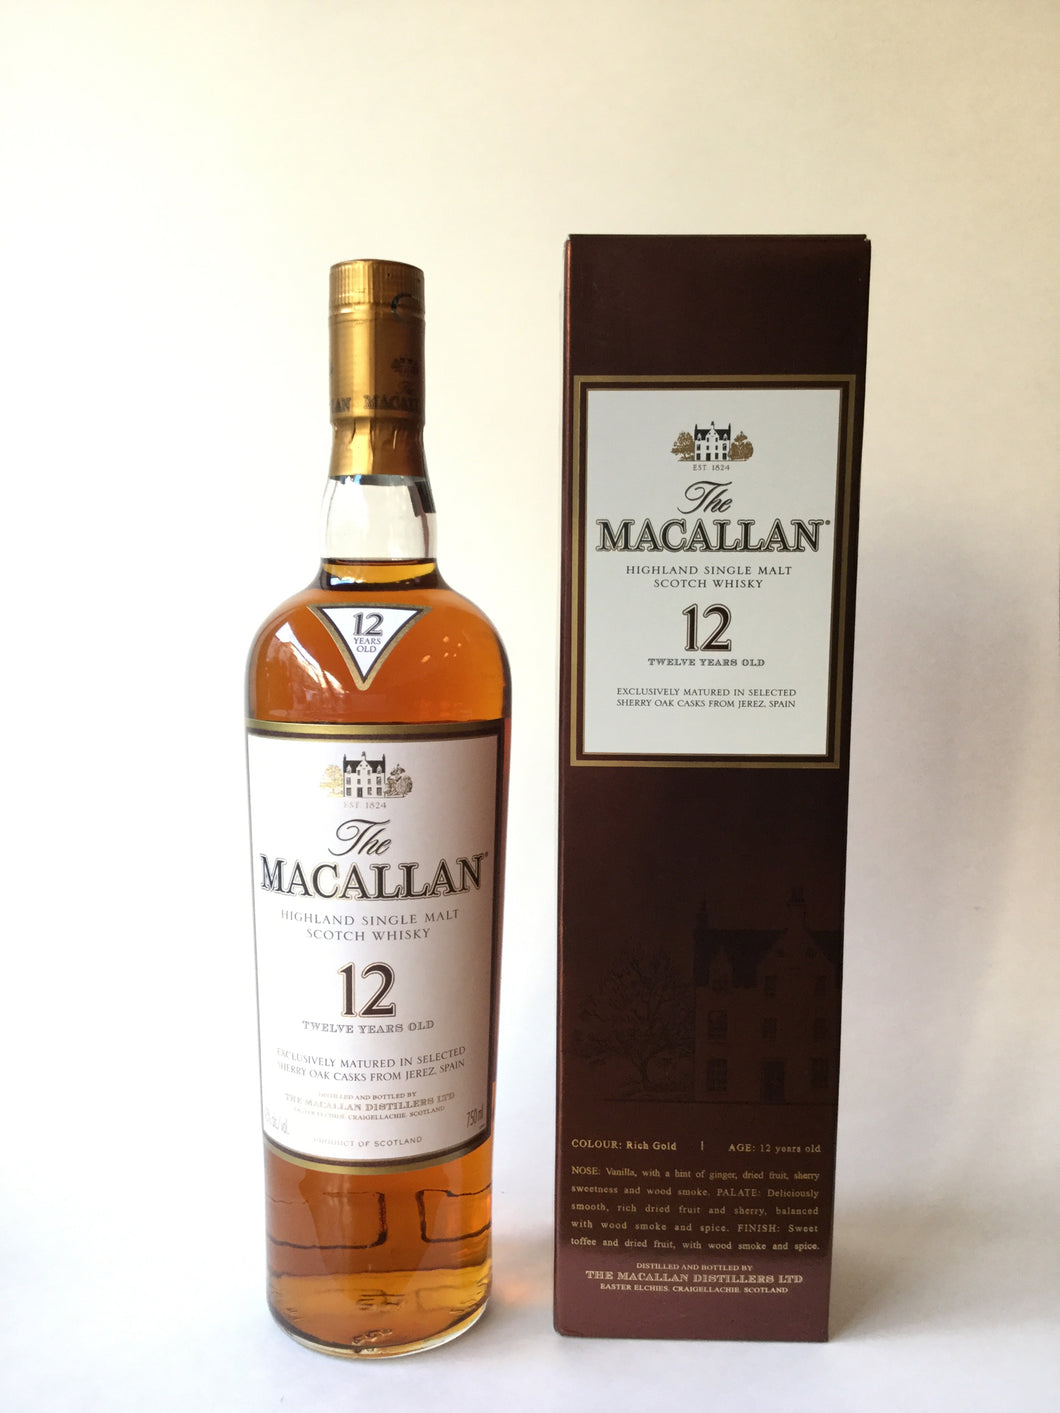 The Macallan, Highland Single Malt Scotch Whisky, 12 Years Old, 750ml - Frankly Wines